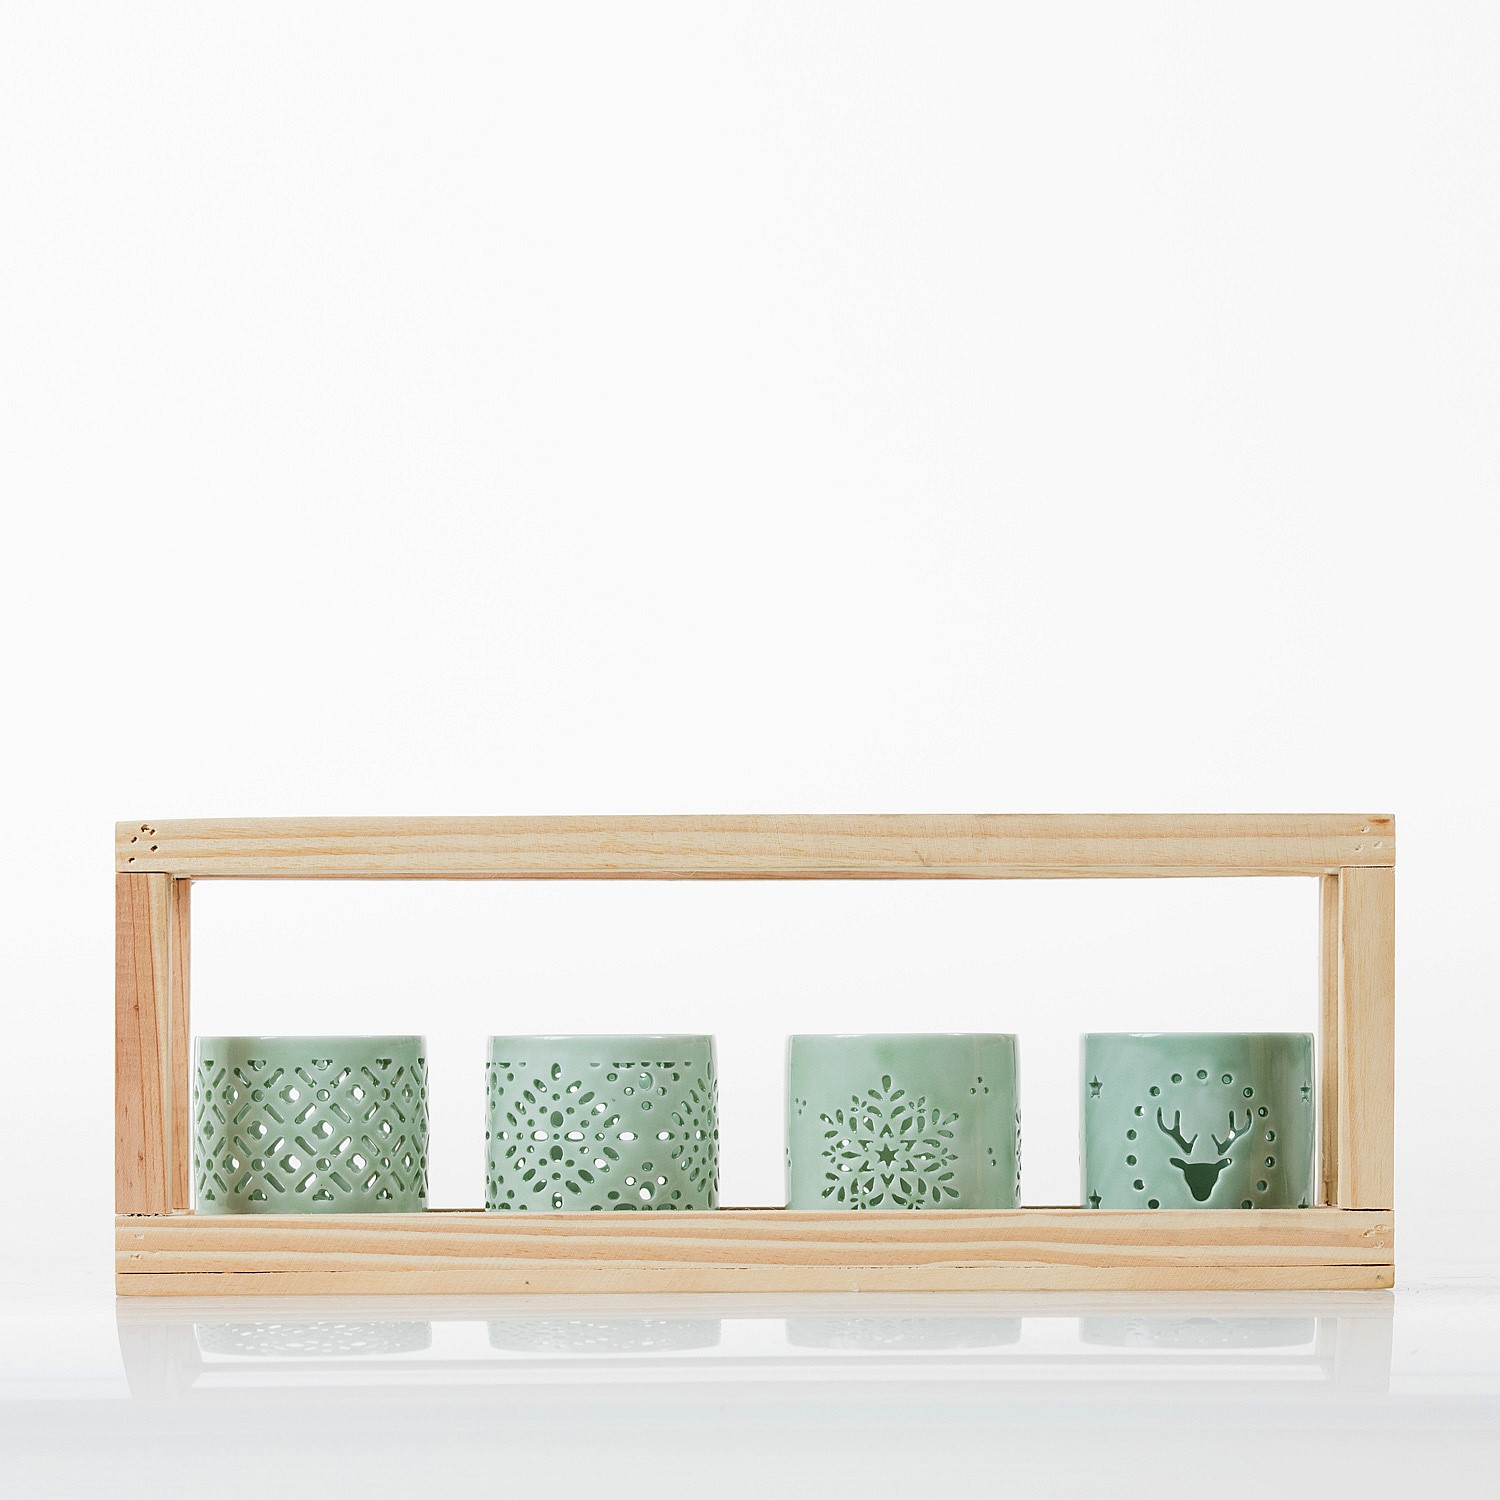 Home Chic Ava Wooden Framed Candle Holder